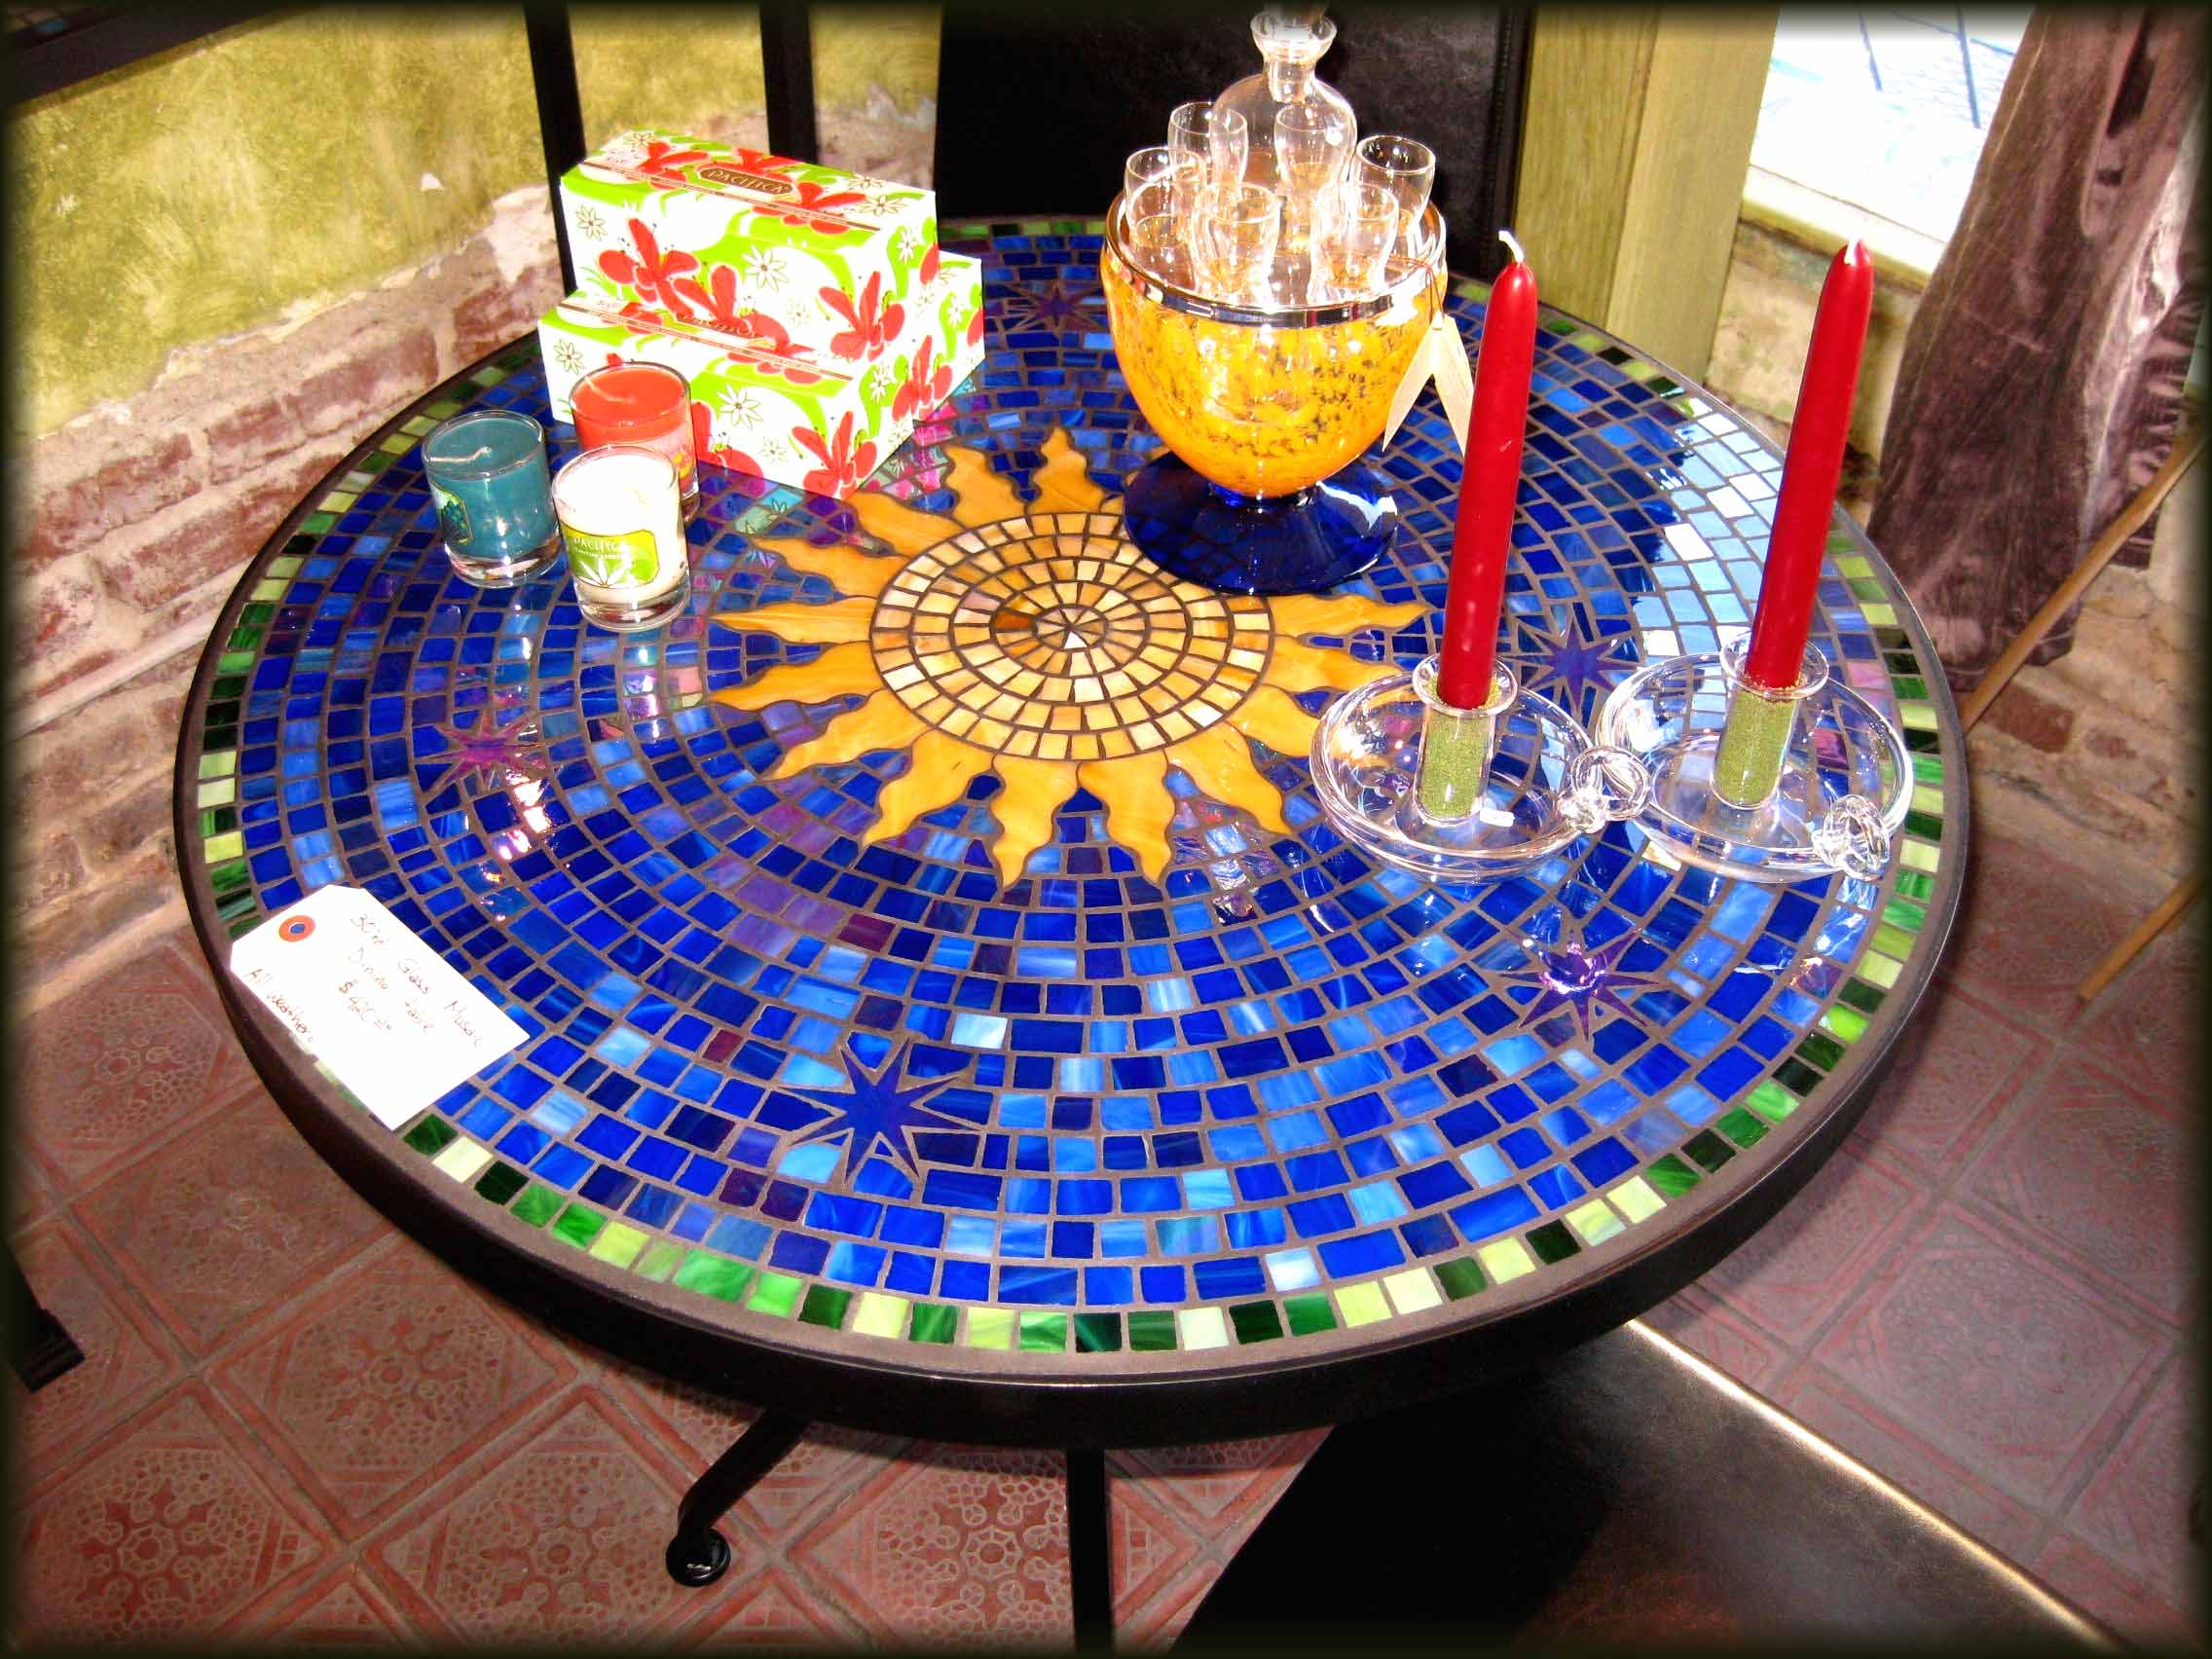 Outstanding Mosaic Tile Table Designs 2272 x 1704 · 345 kB · jpeg